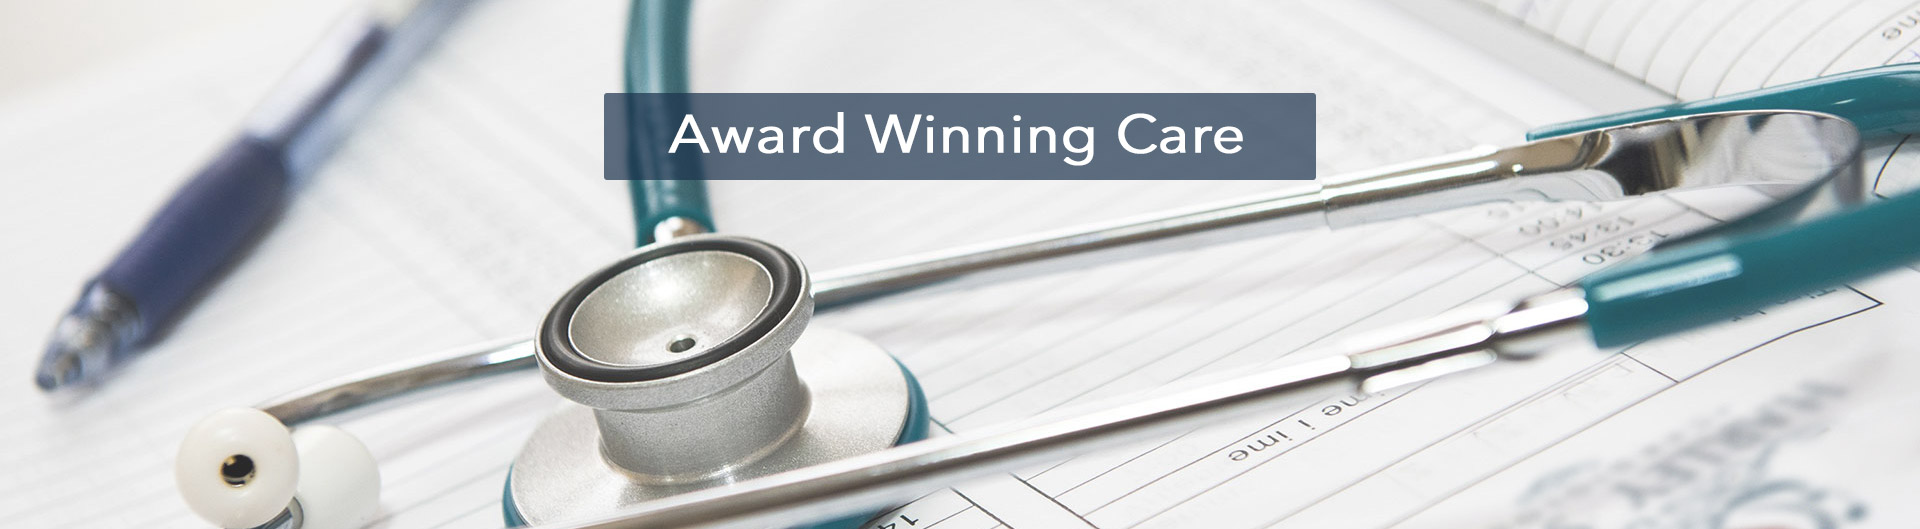 Medical notes header with Award Winning Care title